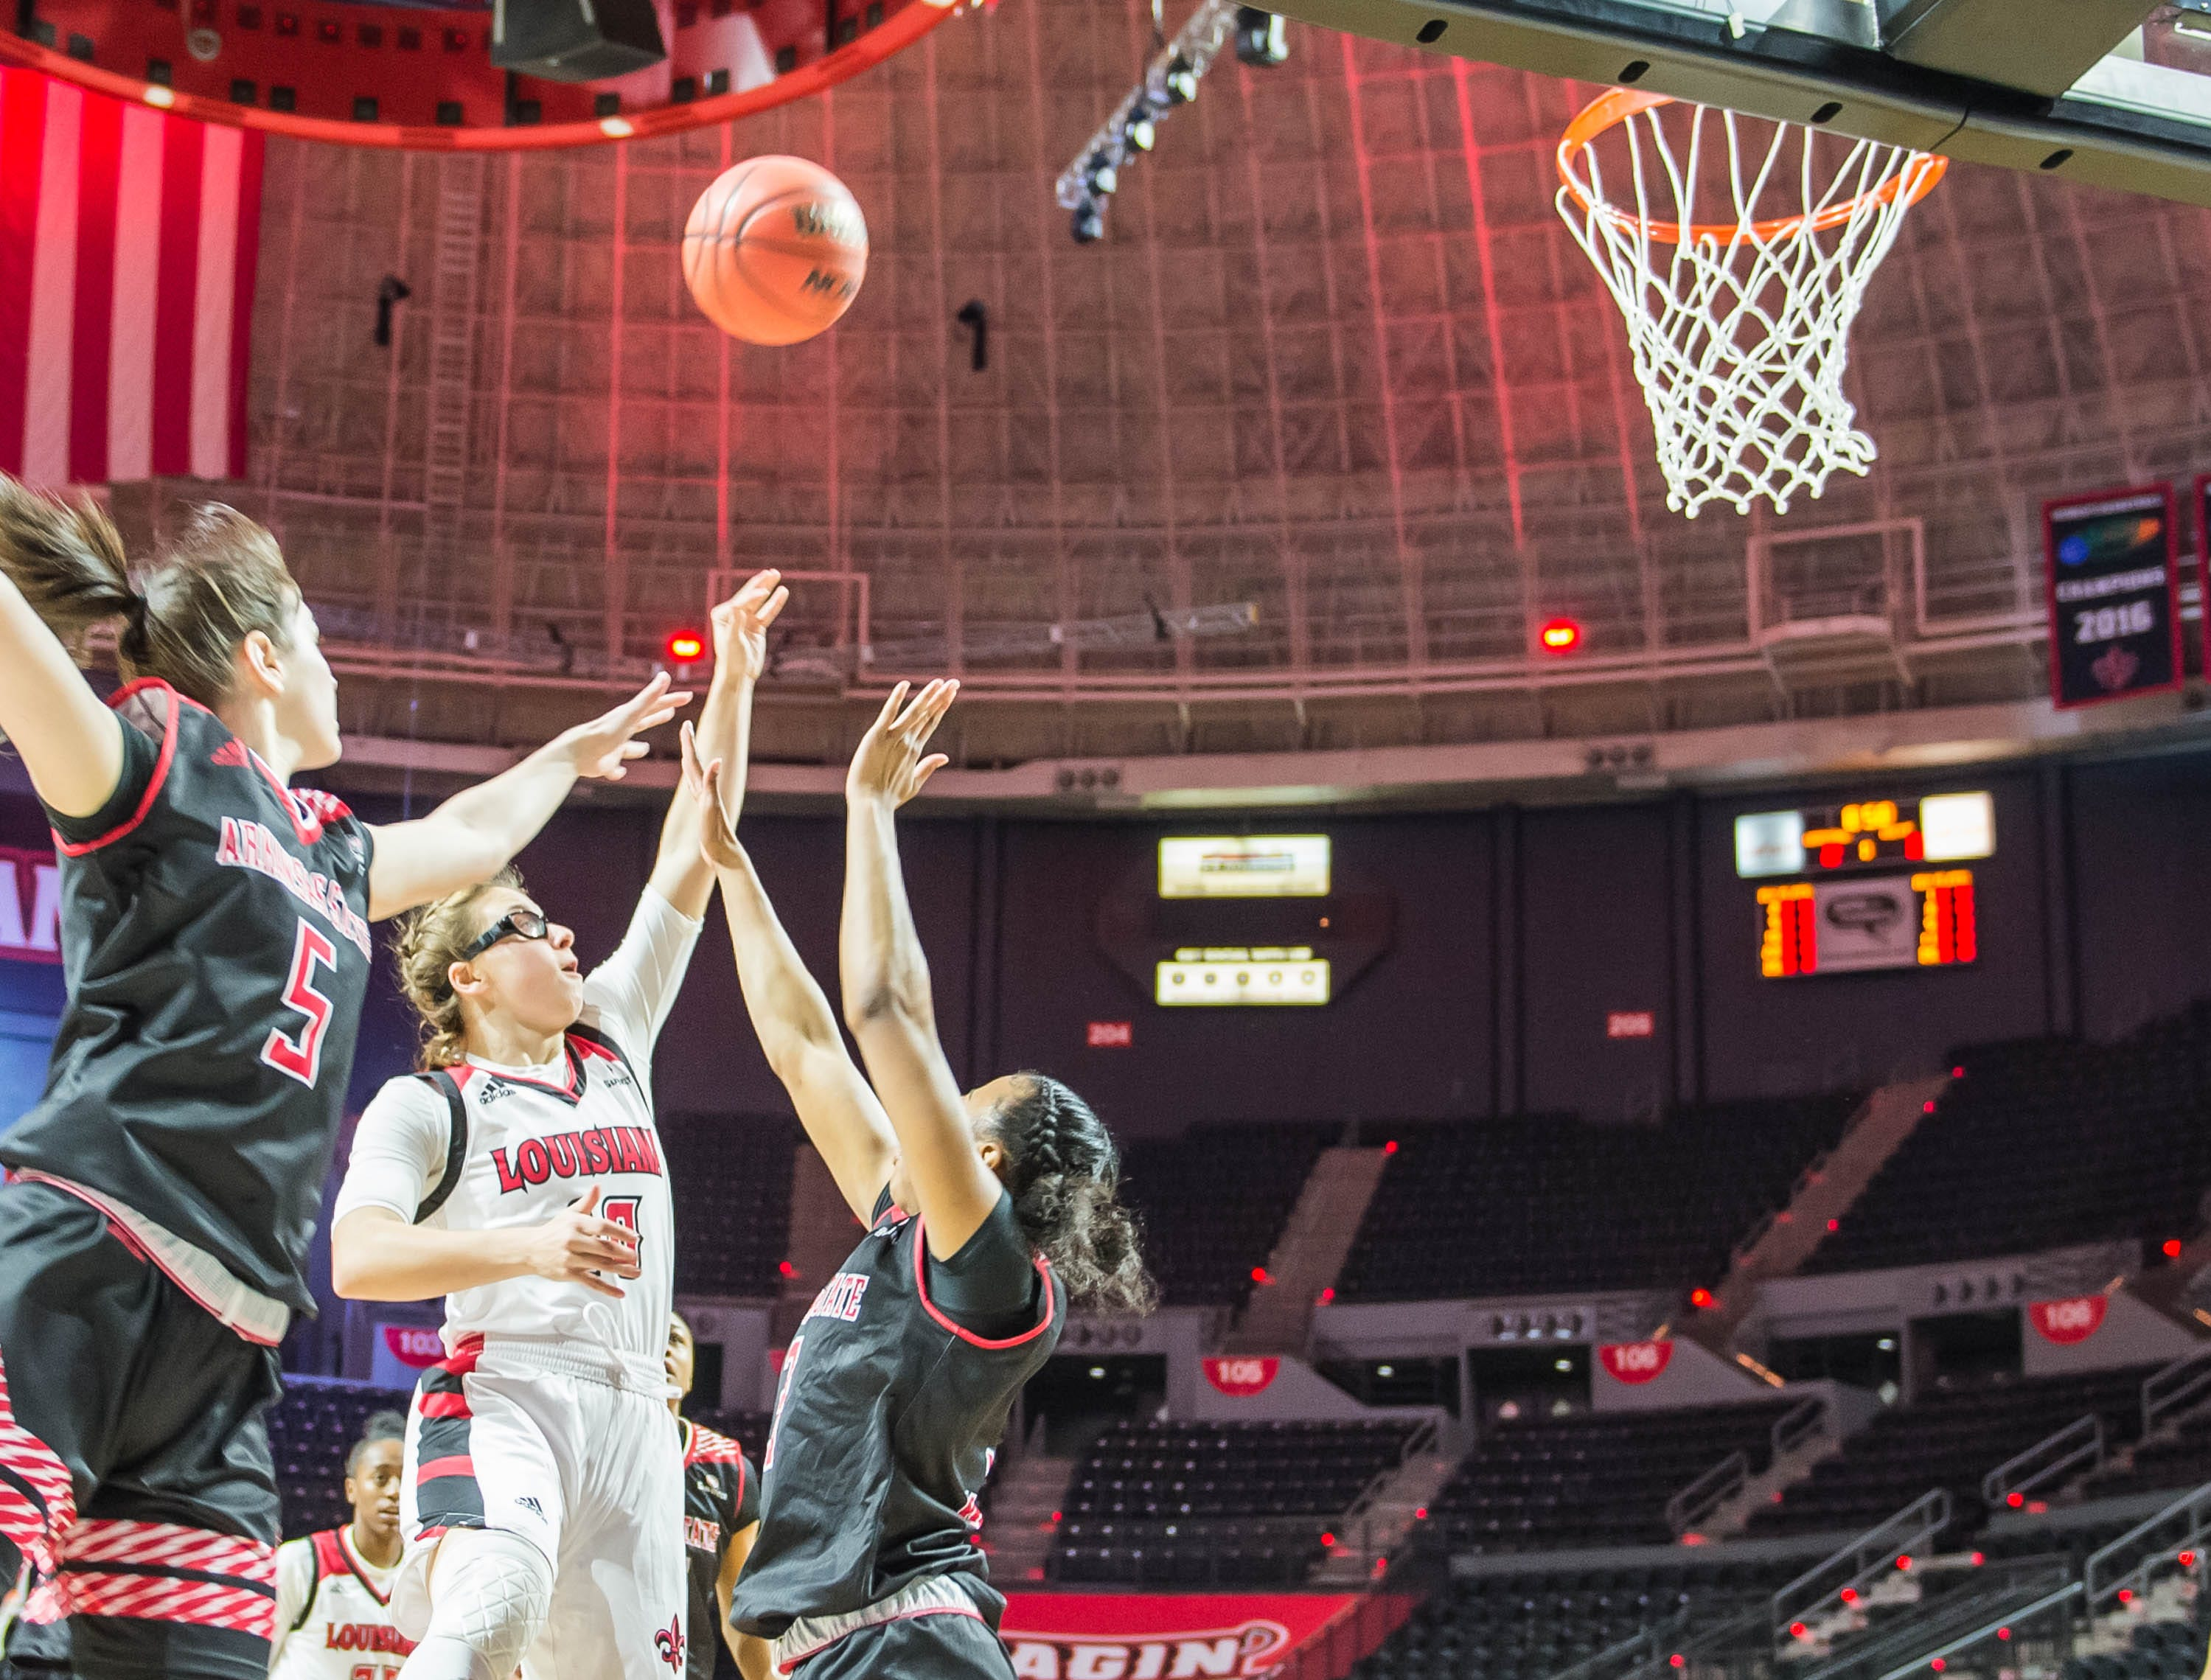 Ragin' Cajuns guard Andrea Cournoyer (10) with the jumper as the Cajuns women's basketball team plays the Arkansas State Red Wolves at the Cajundome on Saturday, March 9, 2019.